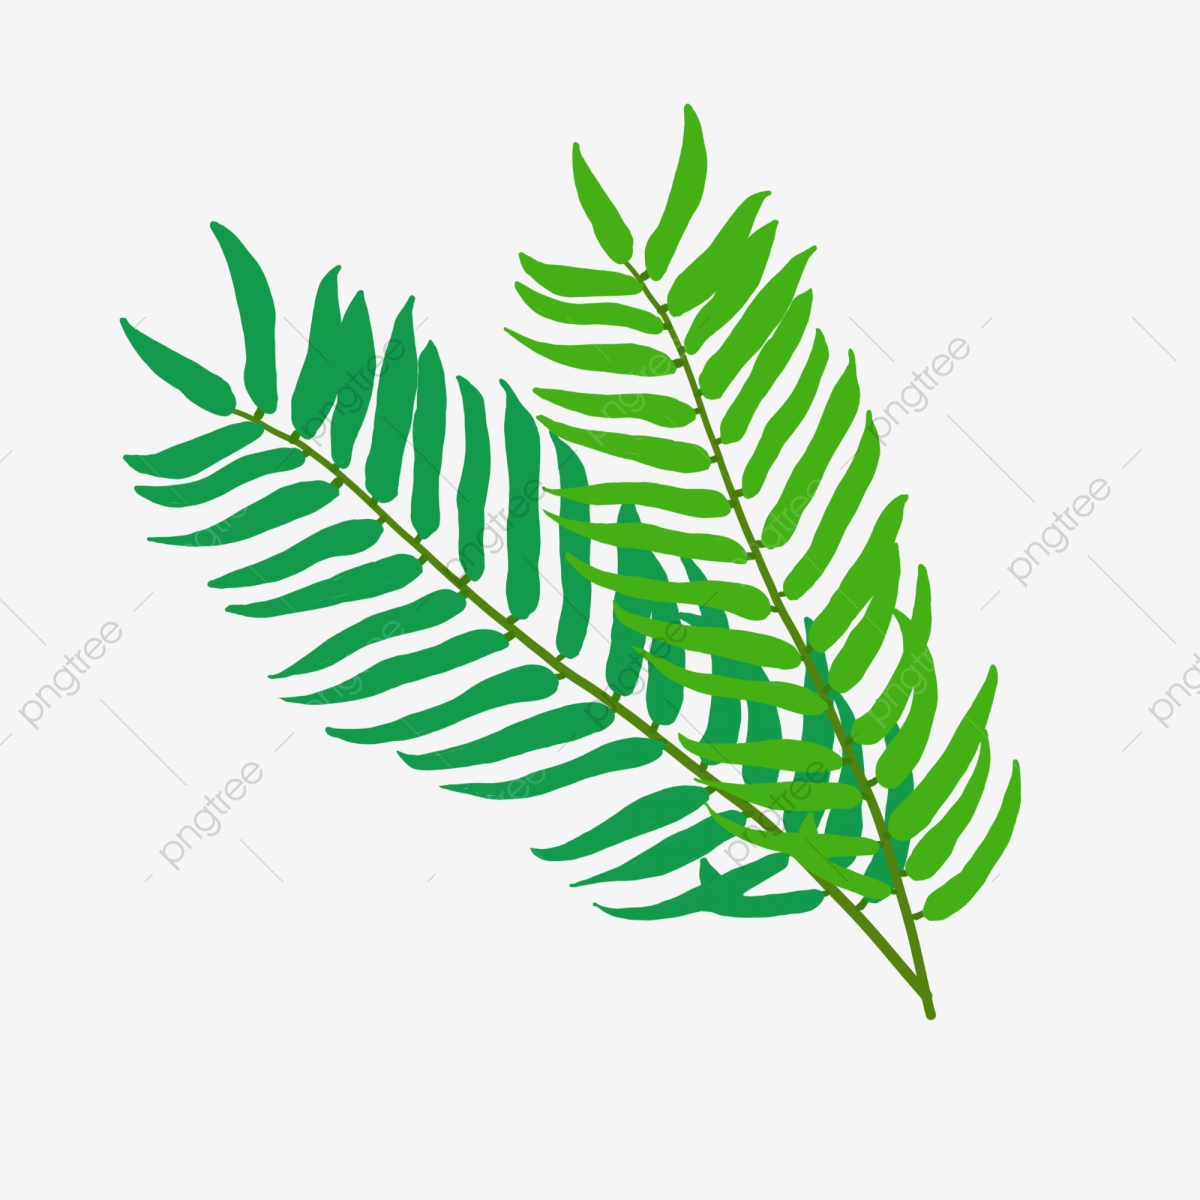 Botanical Elements Hand Drawn Tropical Green Leaves Plant Element Plant Leaf Png Transparent Clipart Image And Psd File For Free Download Free for commercial use no attribution required high quality images. https pngtree com freepng botanical elements hand drawn tropical green leaves 4063122 html